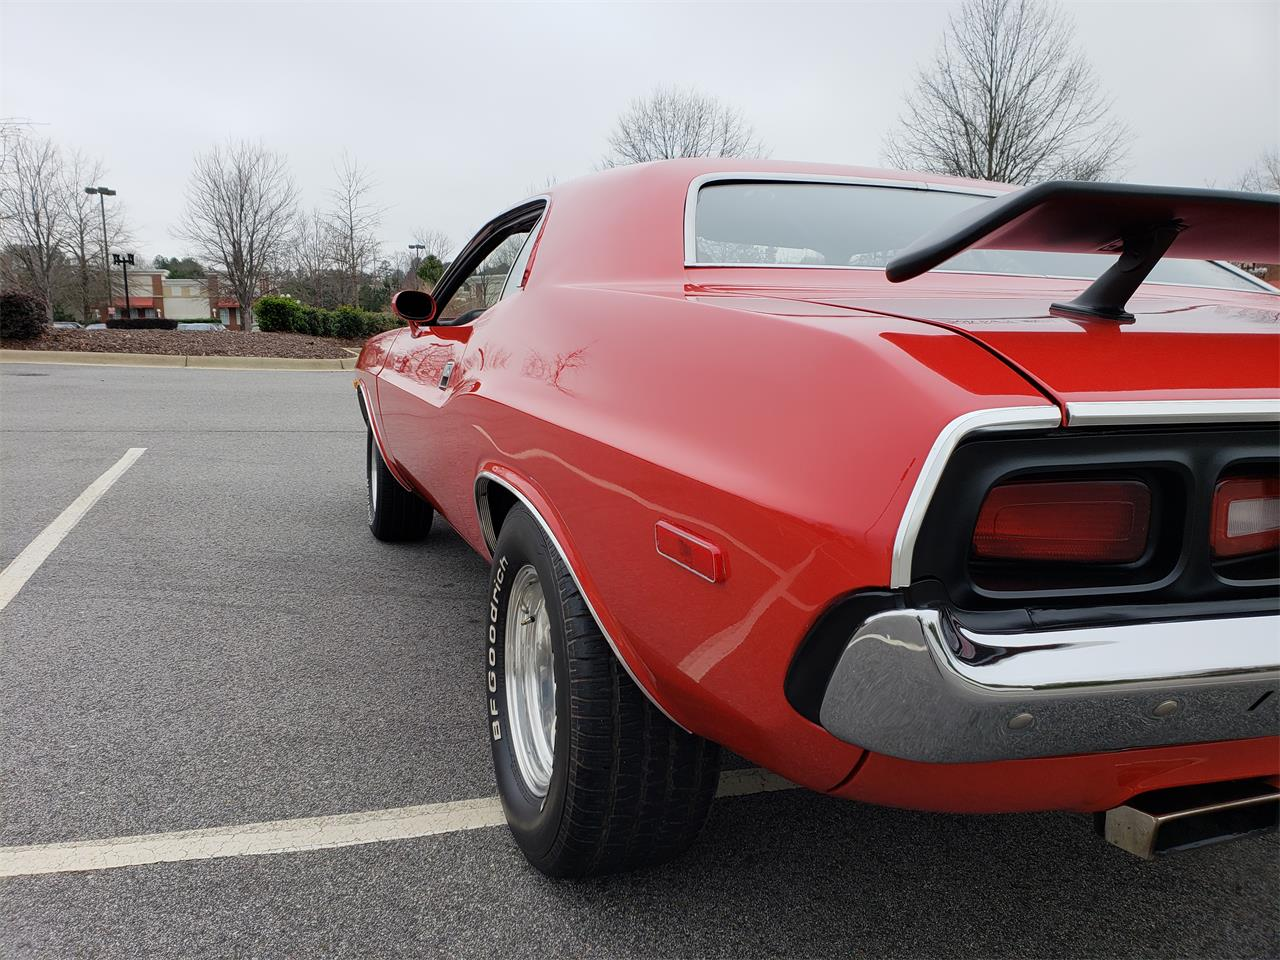 Large Picture of '73 Dodge Challenger - $32,500.00 Offered by a Private Seller - PBV4